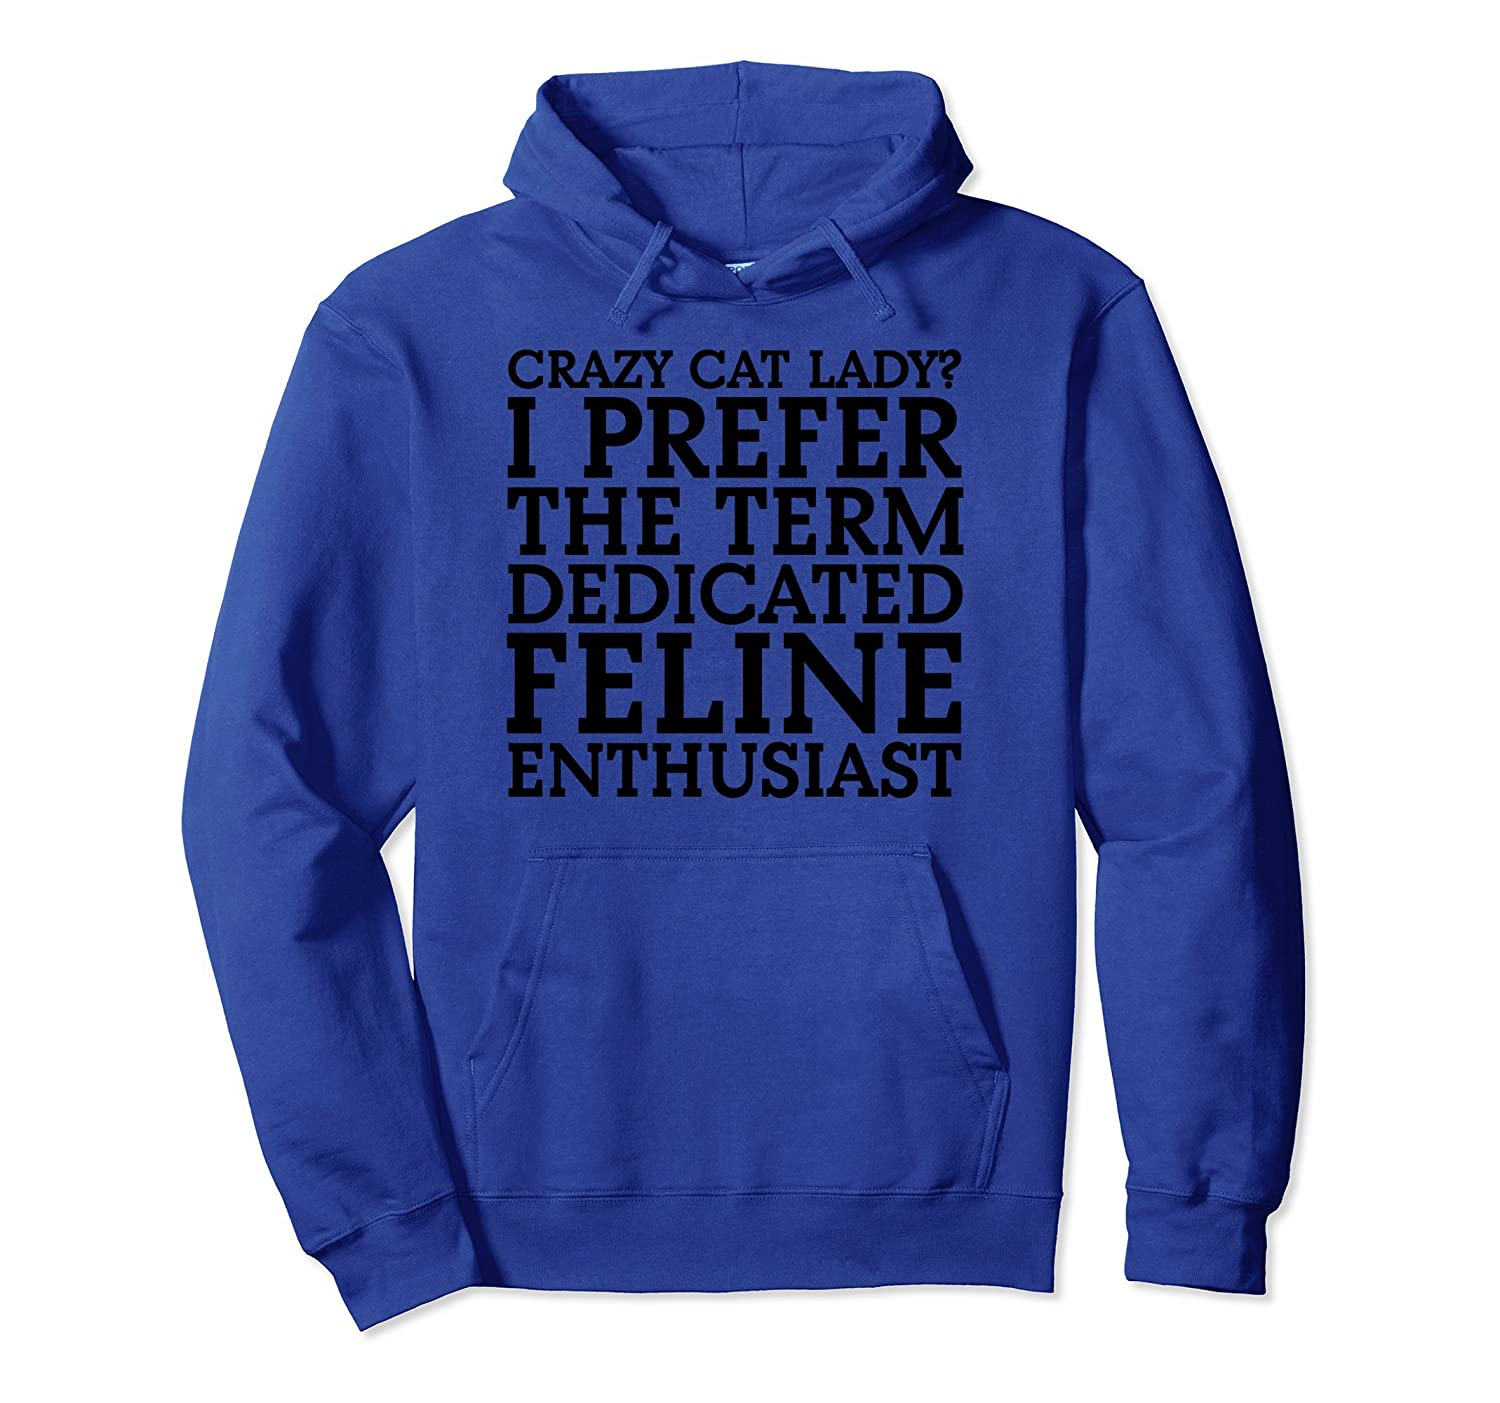 Funny & Cute Crazy Cat Lady | Pet Lover Gift Hoodie C000125-AZP